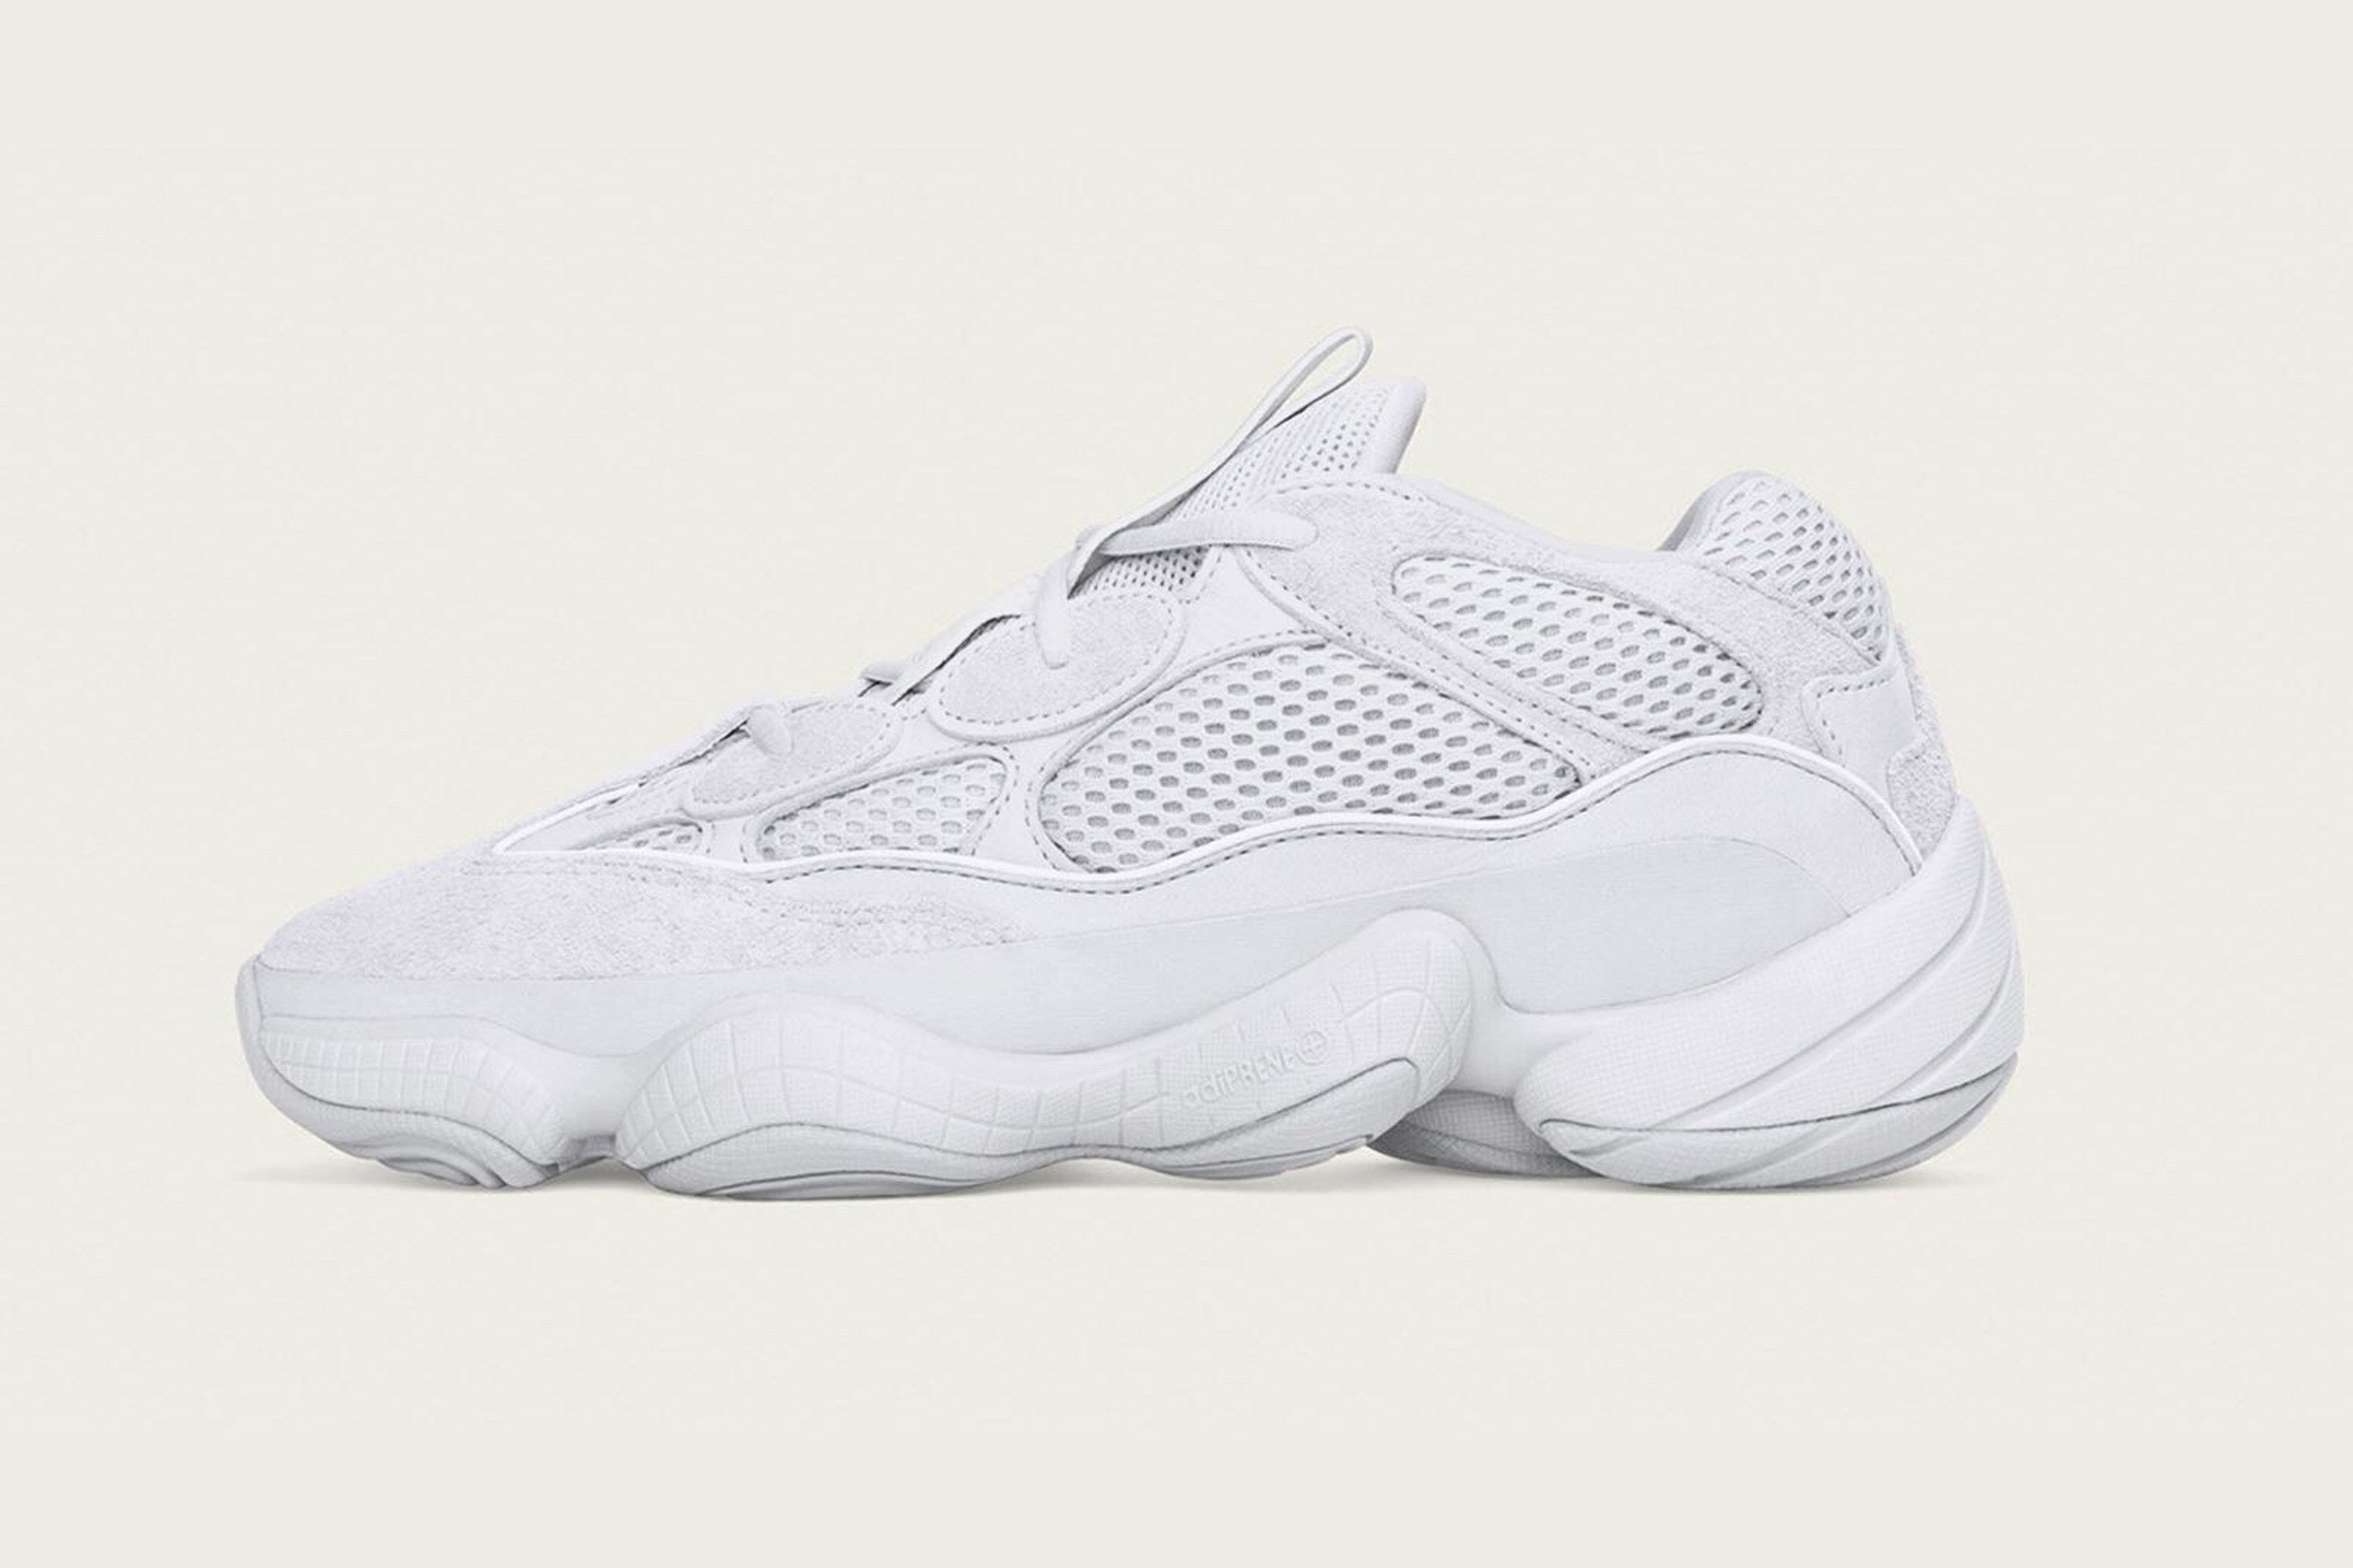 2911c88bc79ae adidas YEEZY 500 in Salt White for 2018 - EU Kicks  Sneaker Magazine